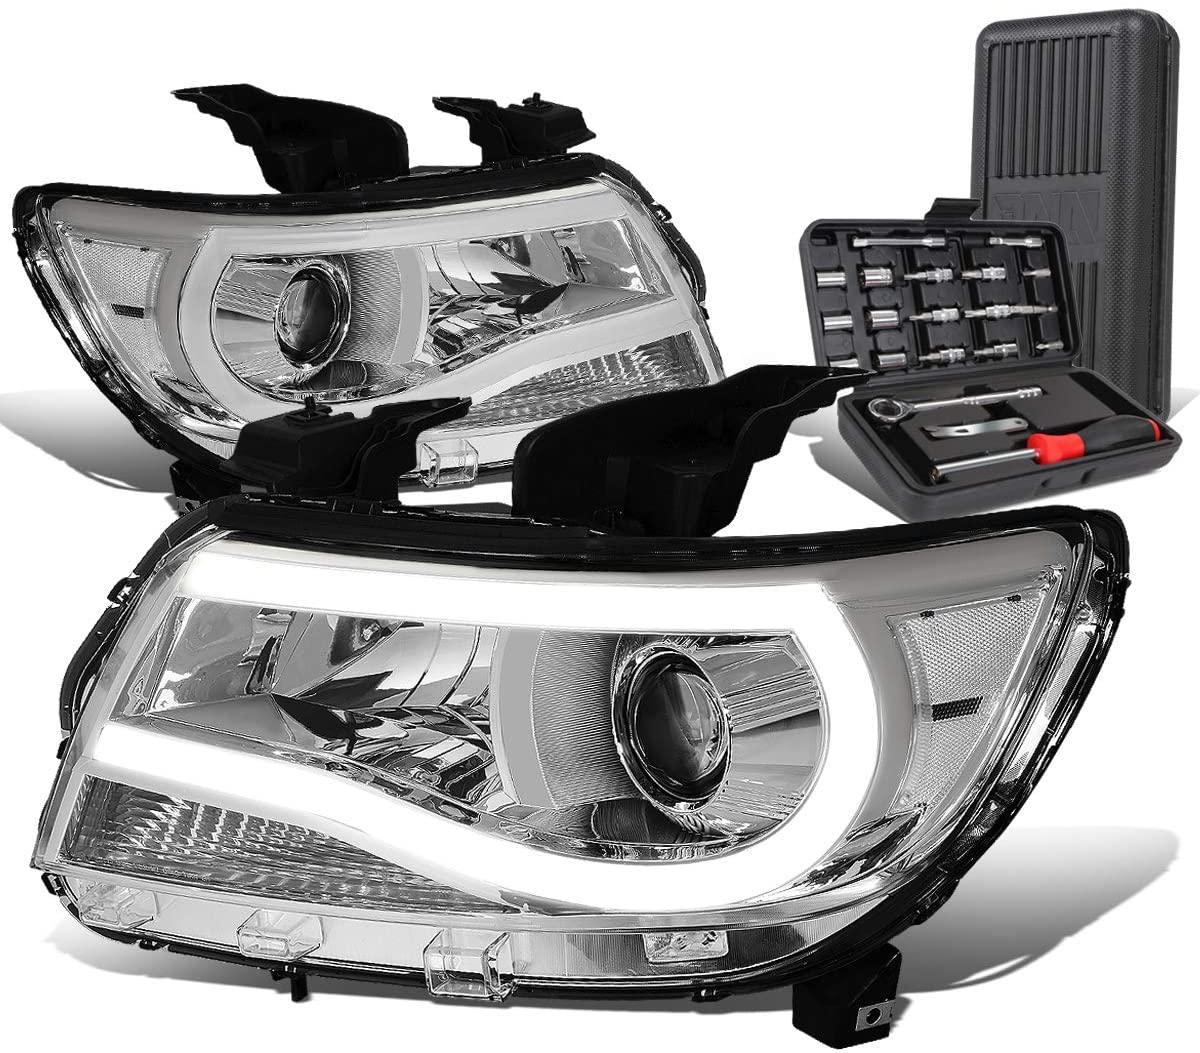 3D LED DRL U-Trip Chrome Housing Clear Corner Projector Headlight+Tool Kit Replacement for Chevy Colorado 15-19